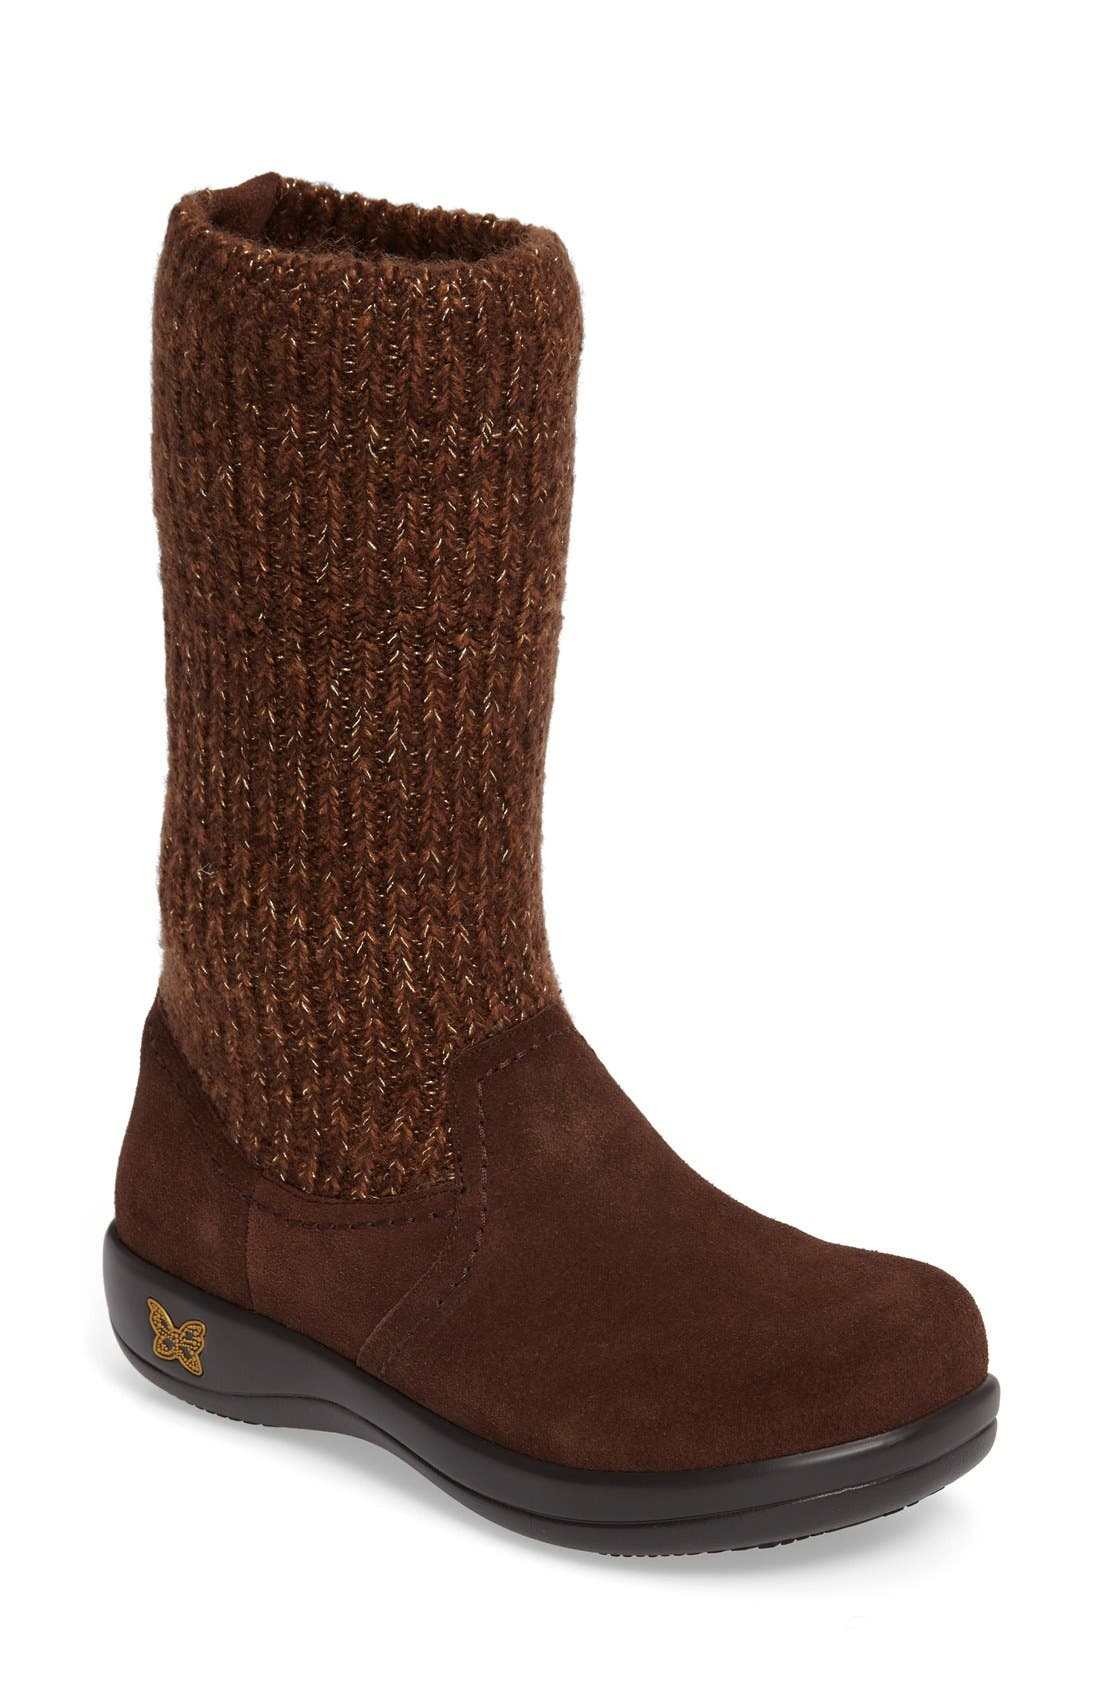 Main Image - Alegria Juneau Leather Boot (Women)